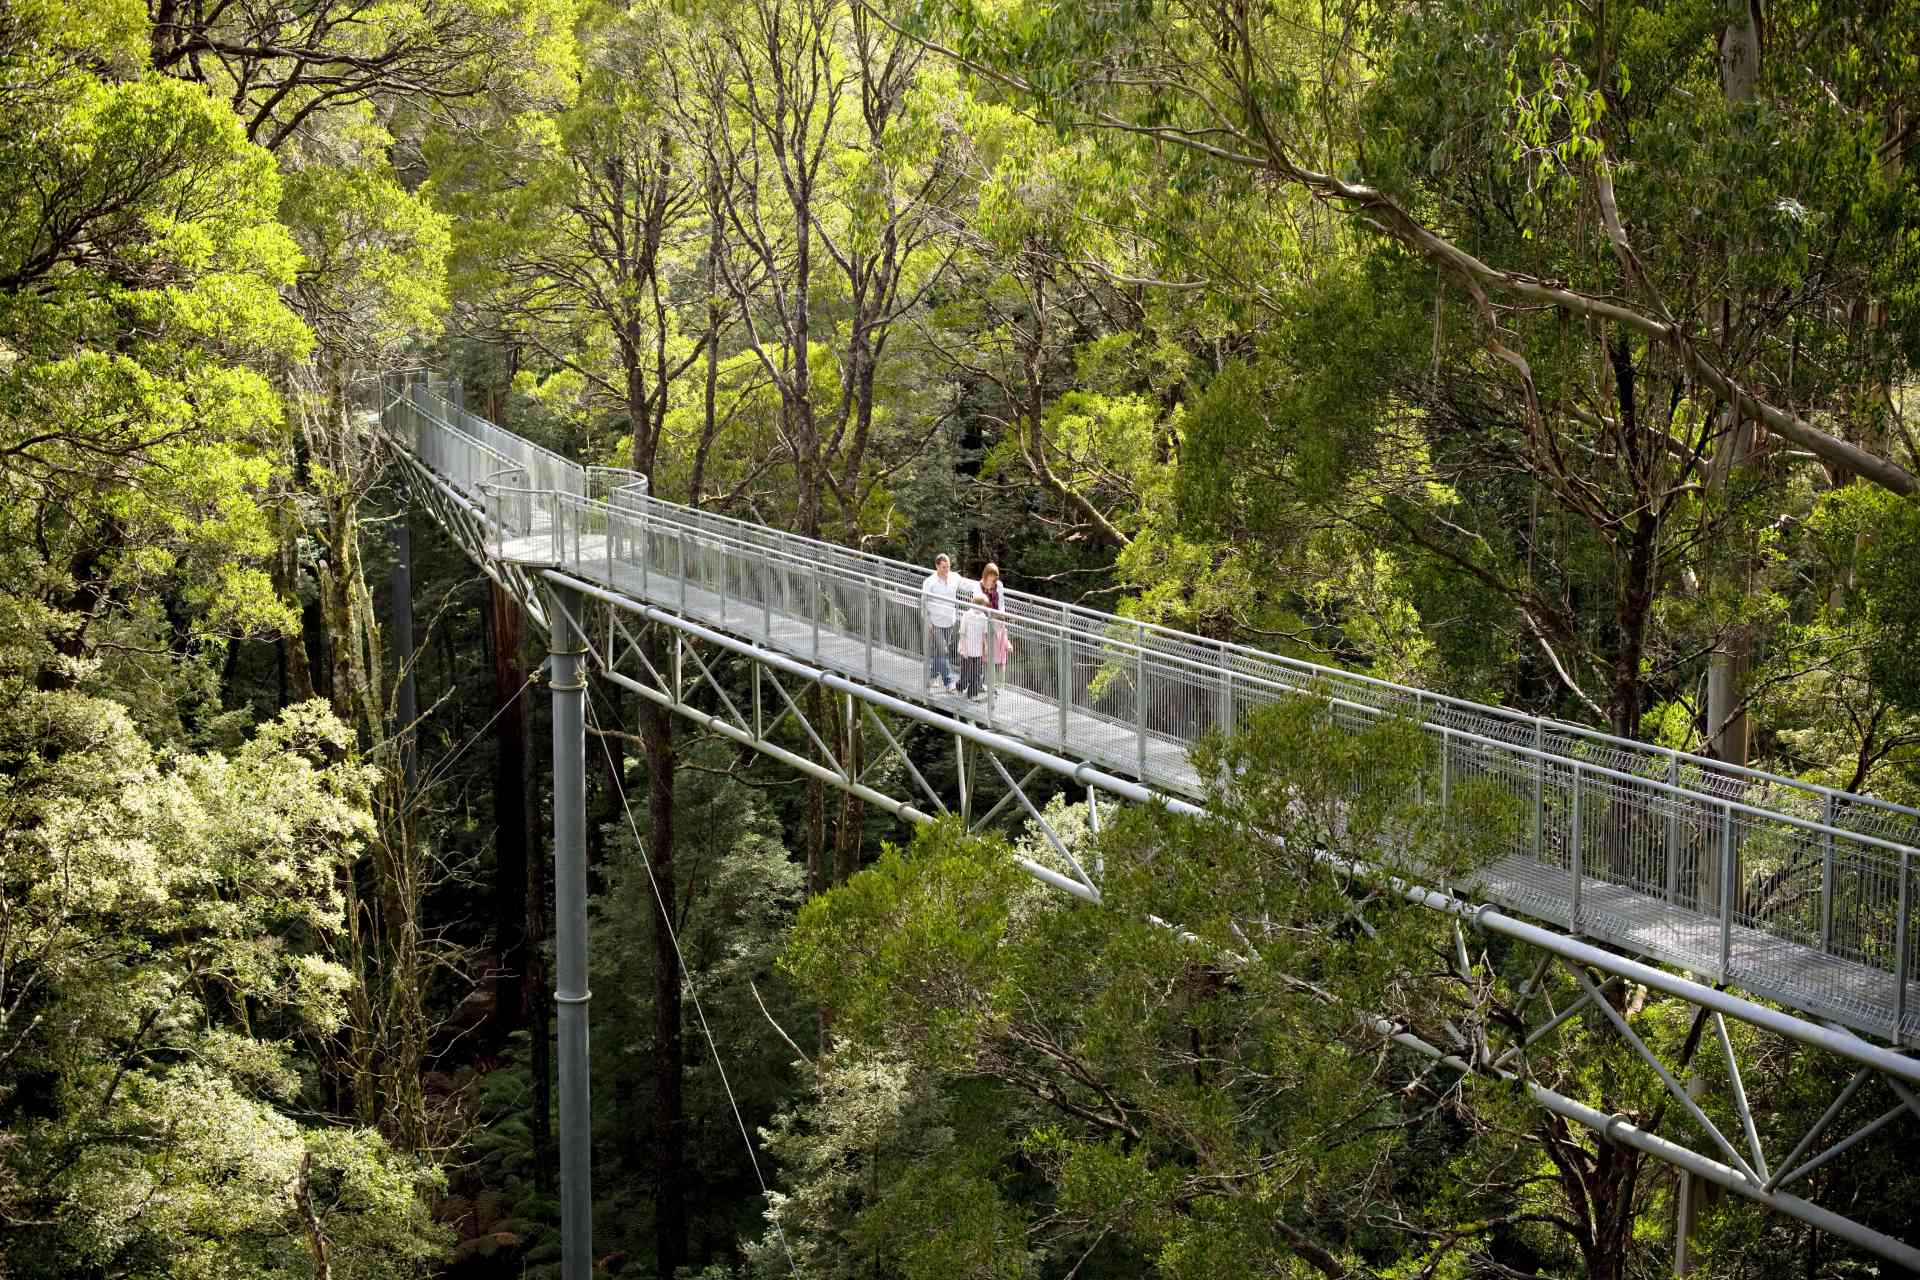 The Otway Fly Treetop Adventures, Weeaproinah, Victoria by Visit Victoria